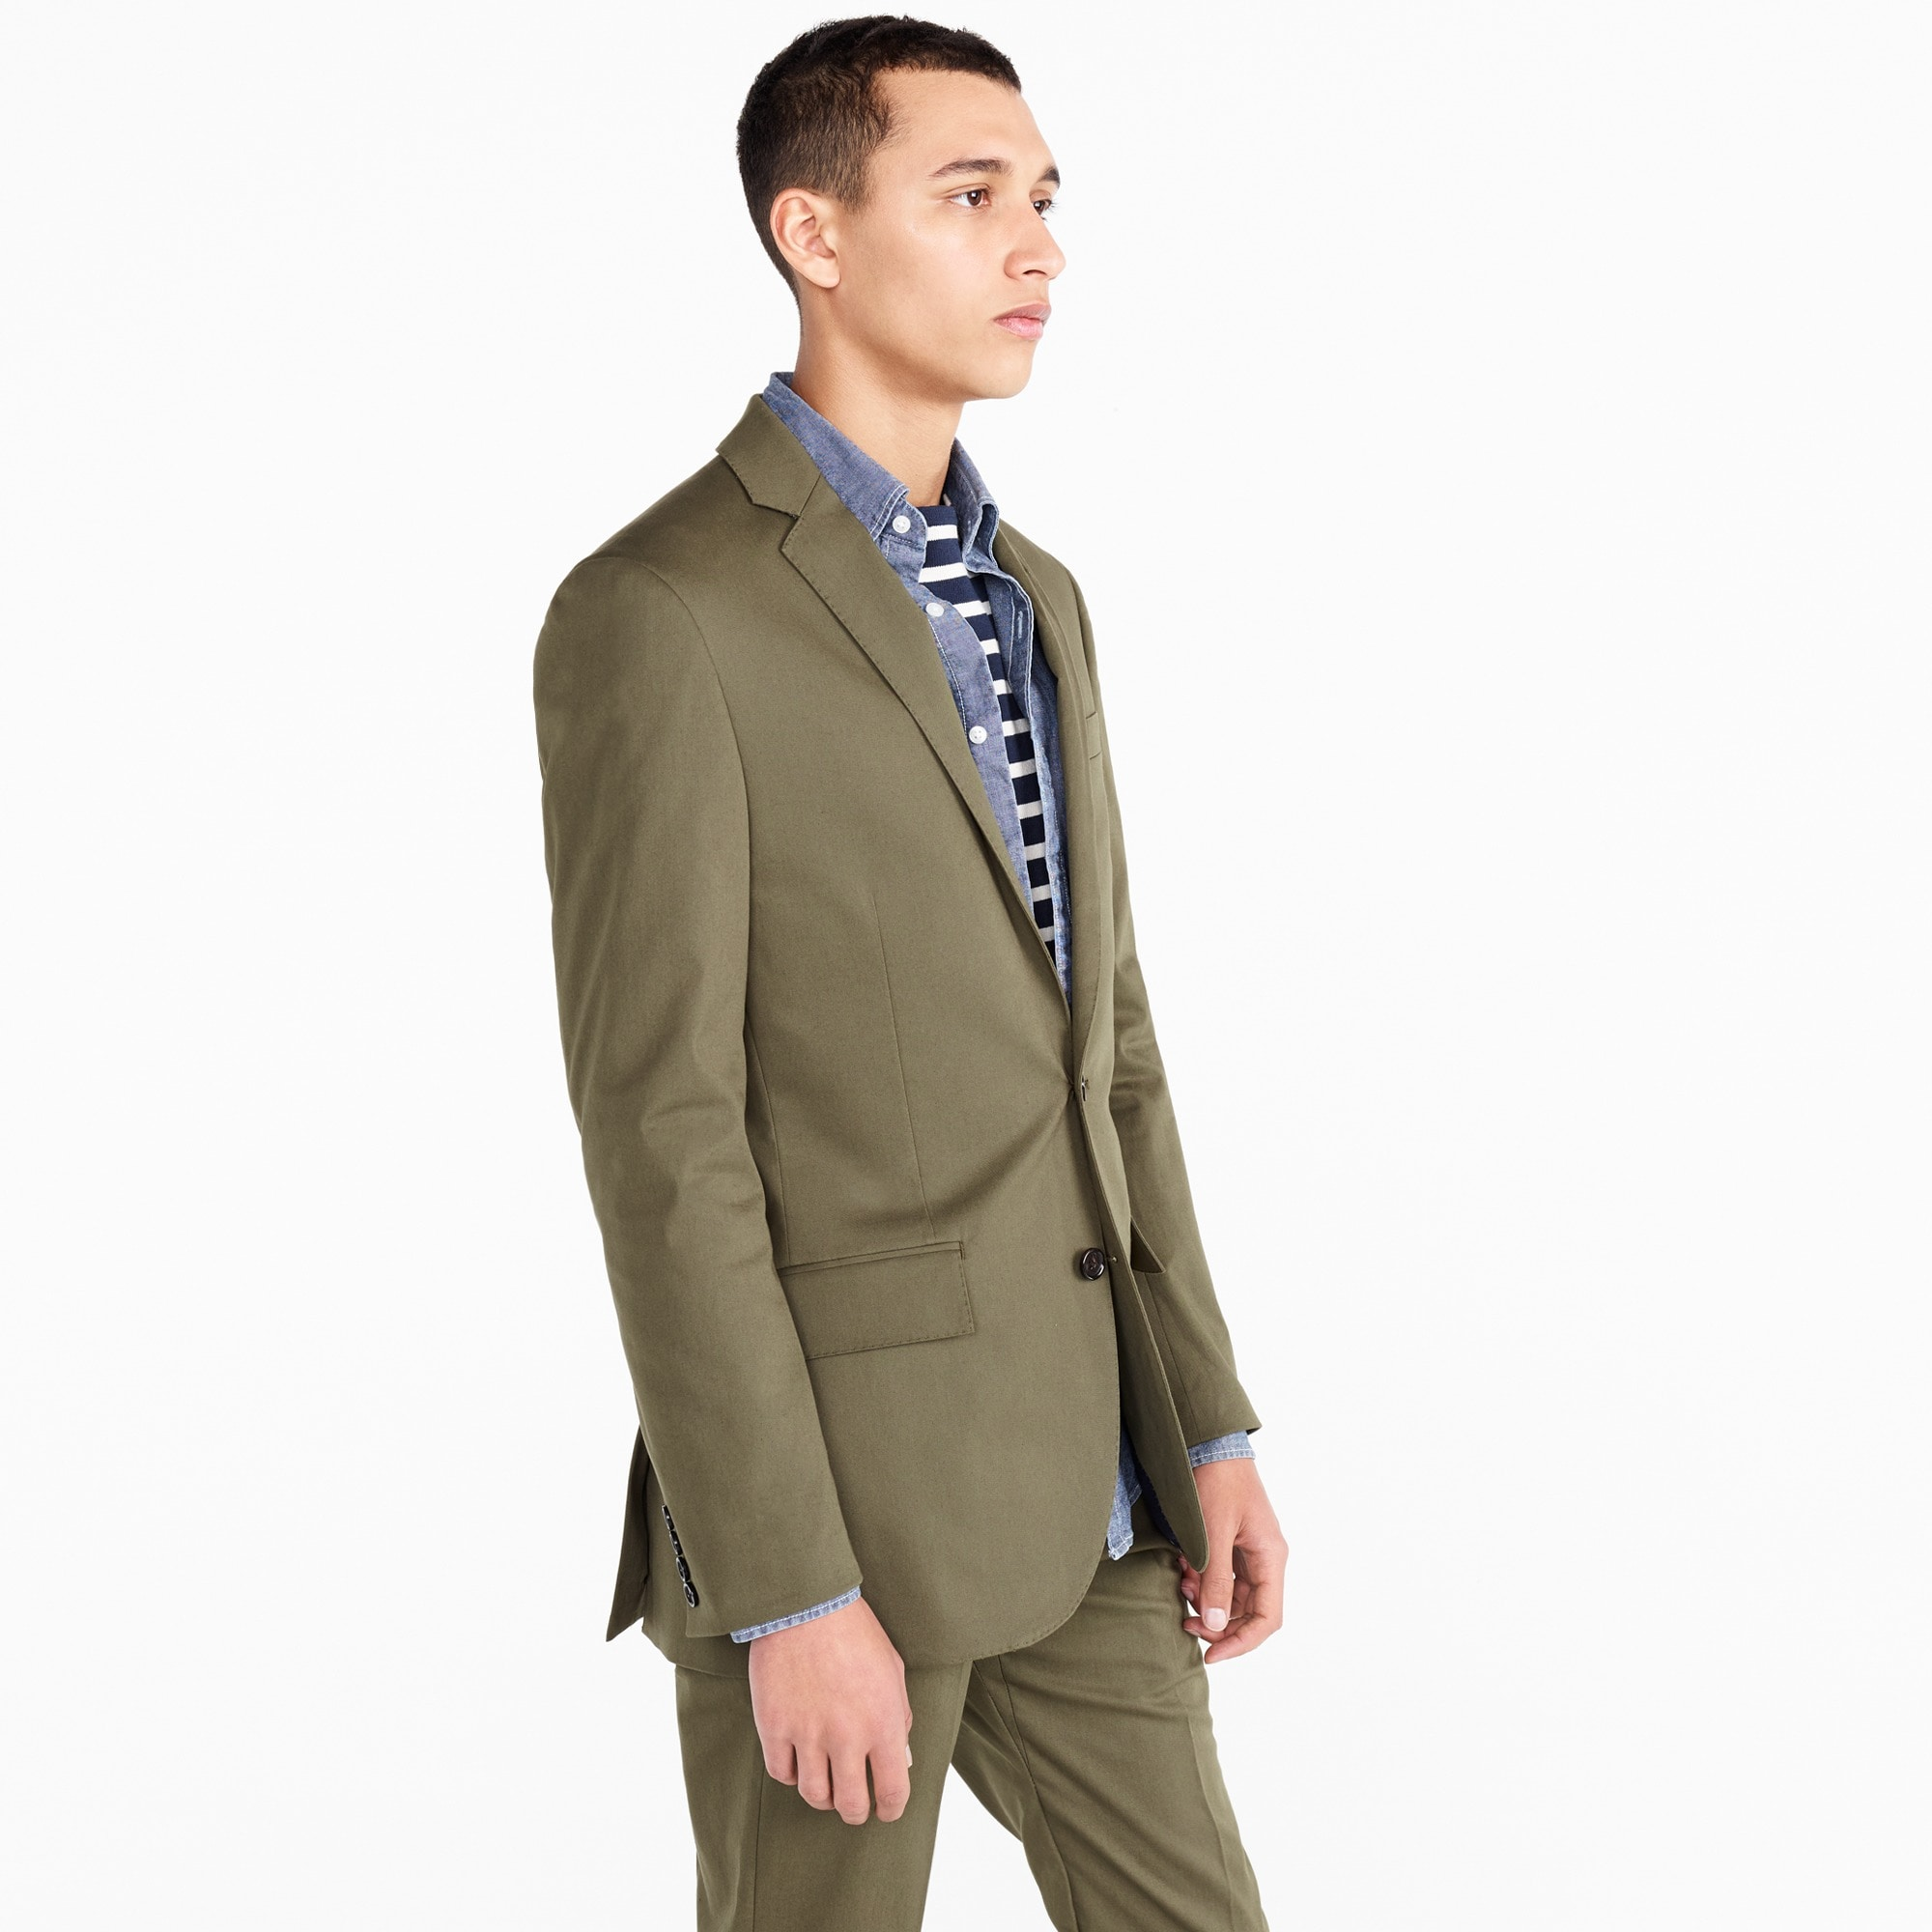 Image 3 for Ludlow Slim-fit suit jacket in Italian stretch chino